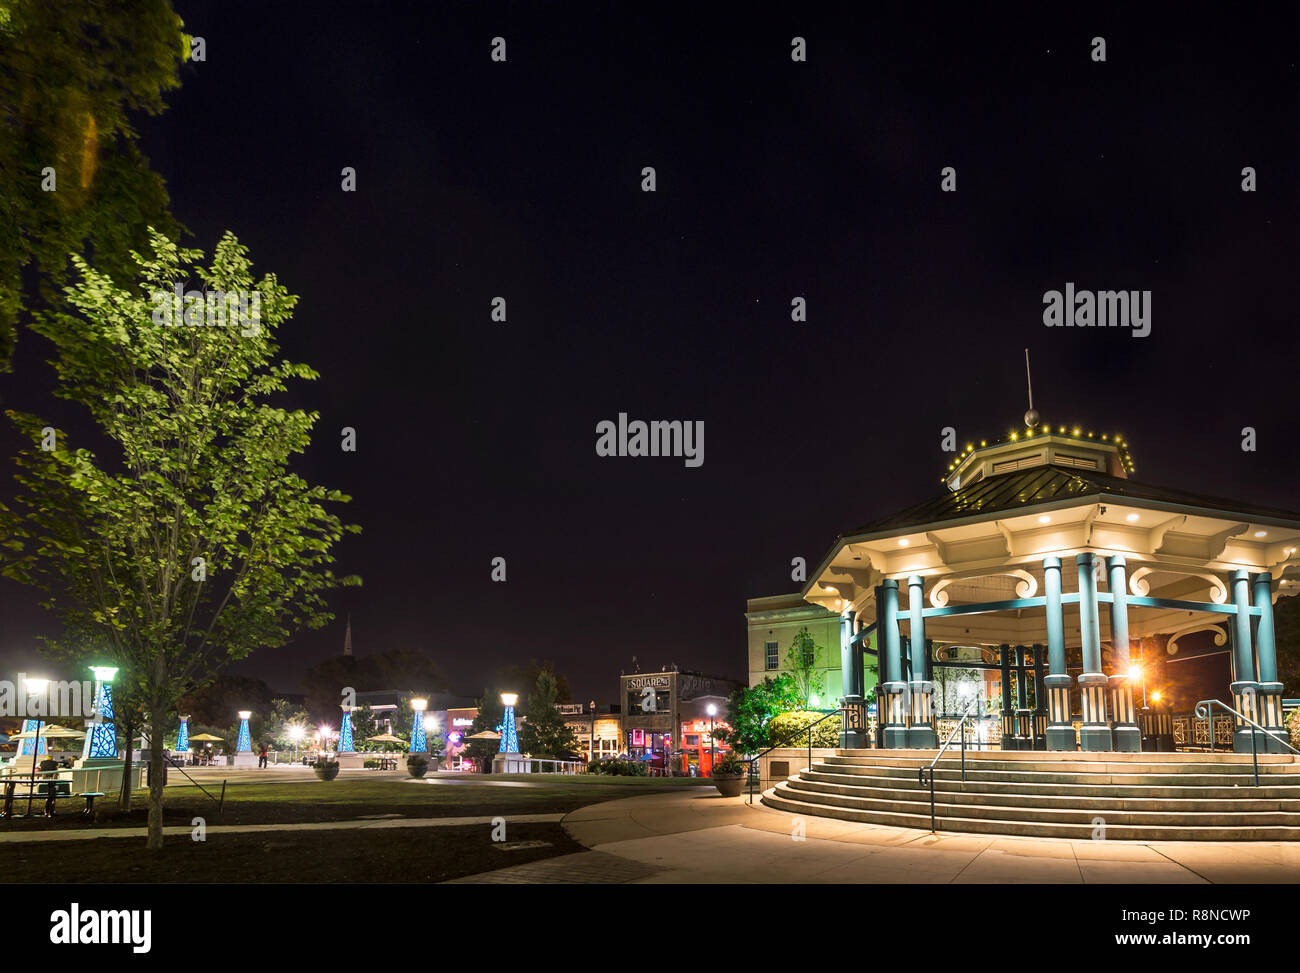 Decatur Square's gazebo and bandstand is pictured at night, June 4, 2014, in Decatur, Georgia. - Stock Image